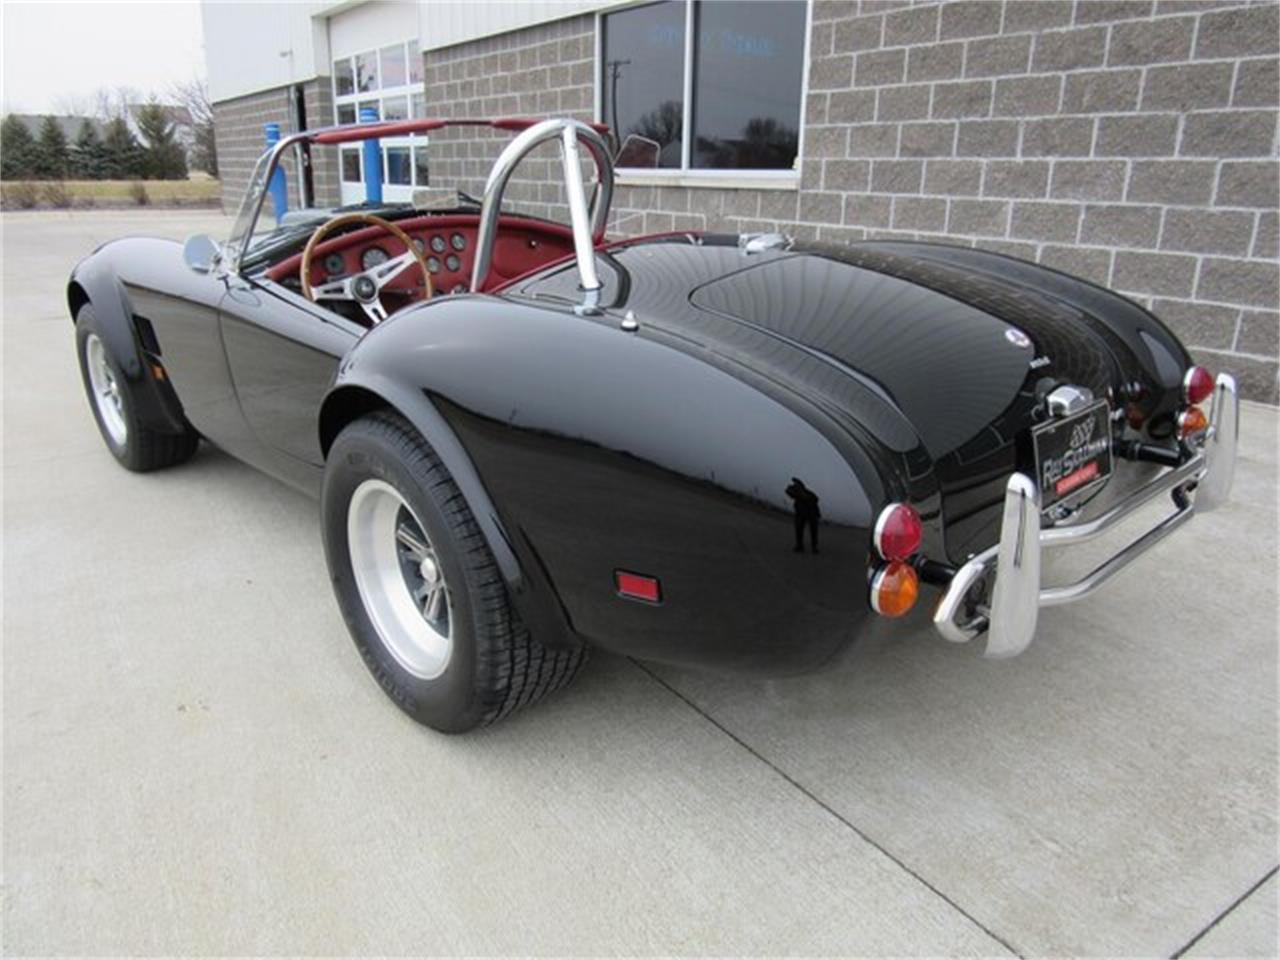 1985 Autokraft Cobra for sale in Greenwood, IN – photo 30